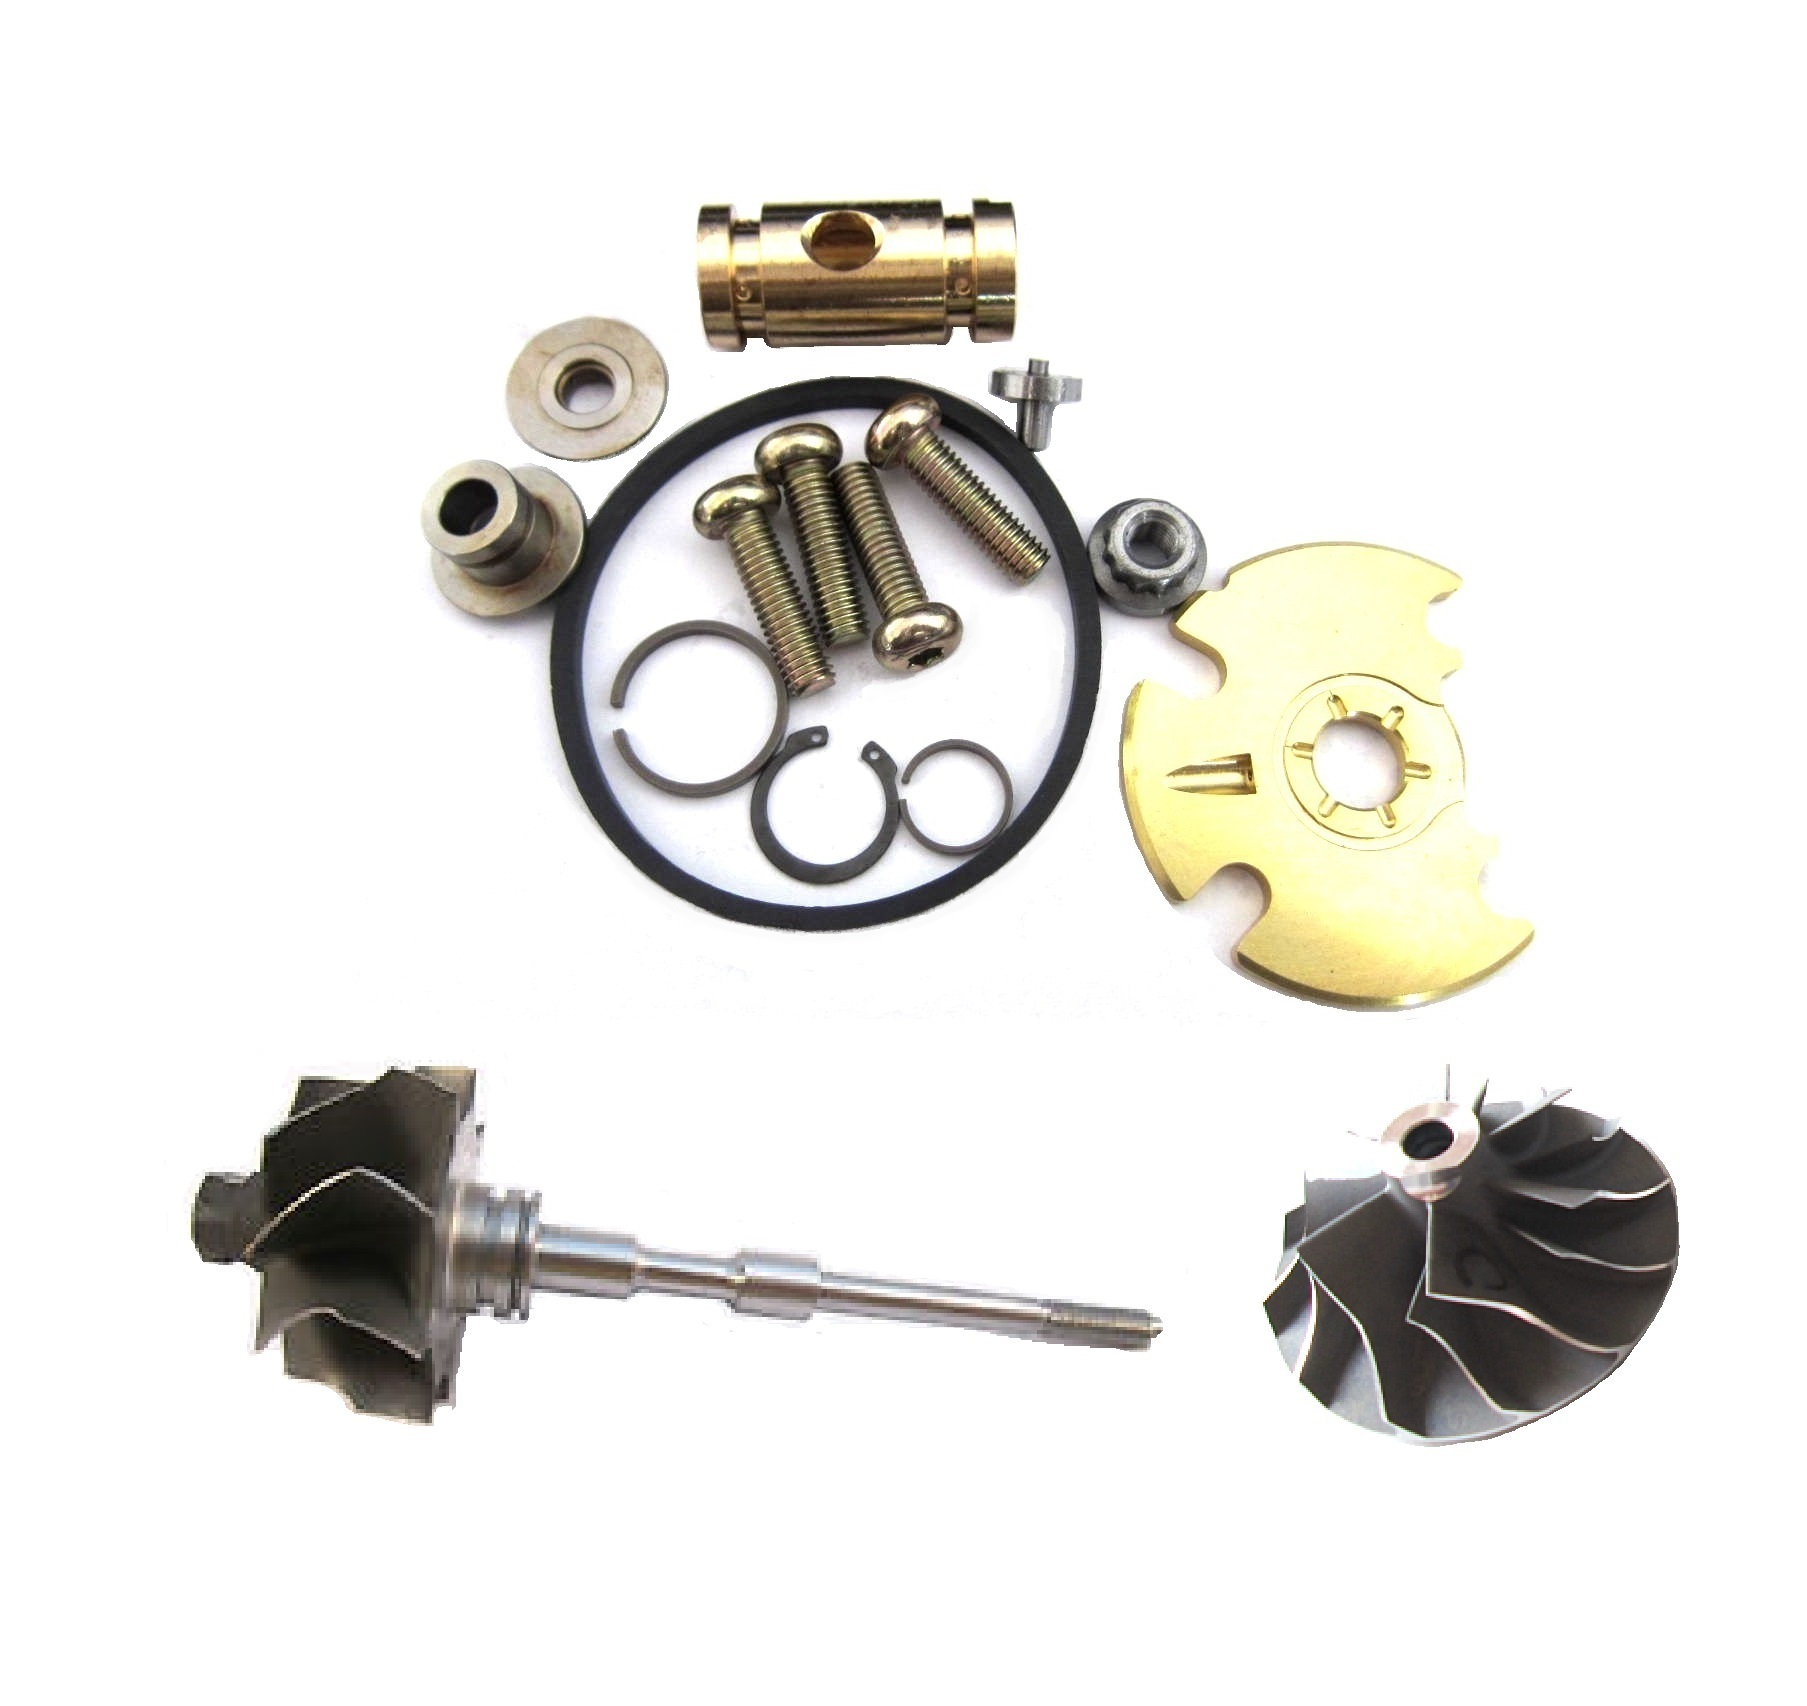 Kit de reparatie turbina Ford complet